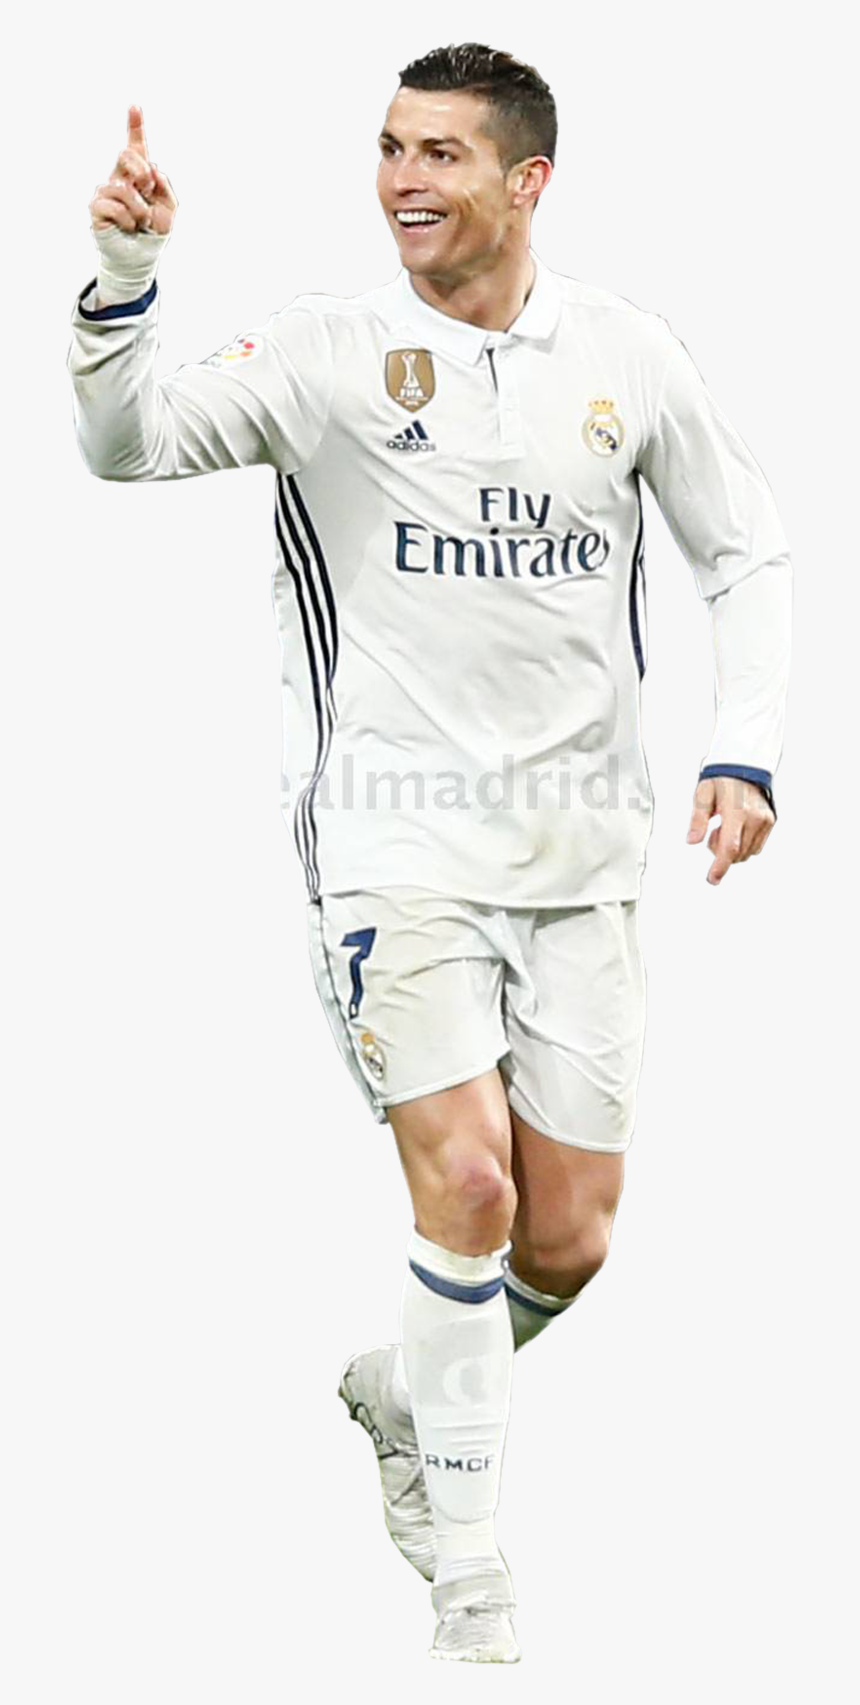 Cristiano Ronaldo Real Madrid 2017 Png Clipart Clipart - App Has Been Updated Pes 2019, Transparent Png, Free Download